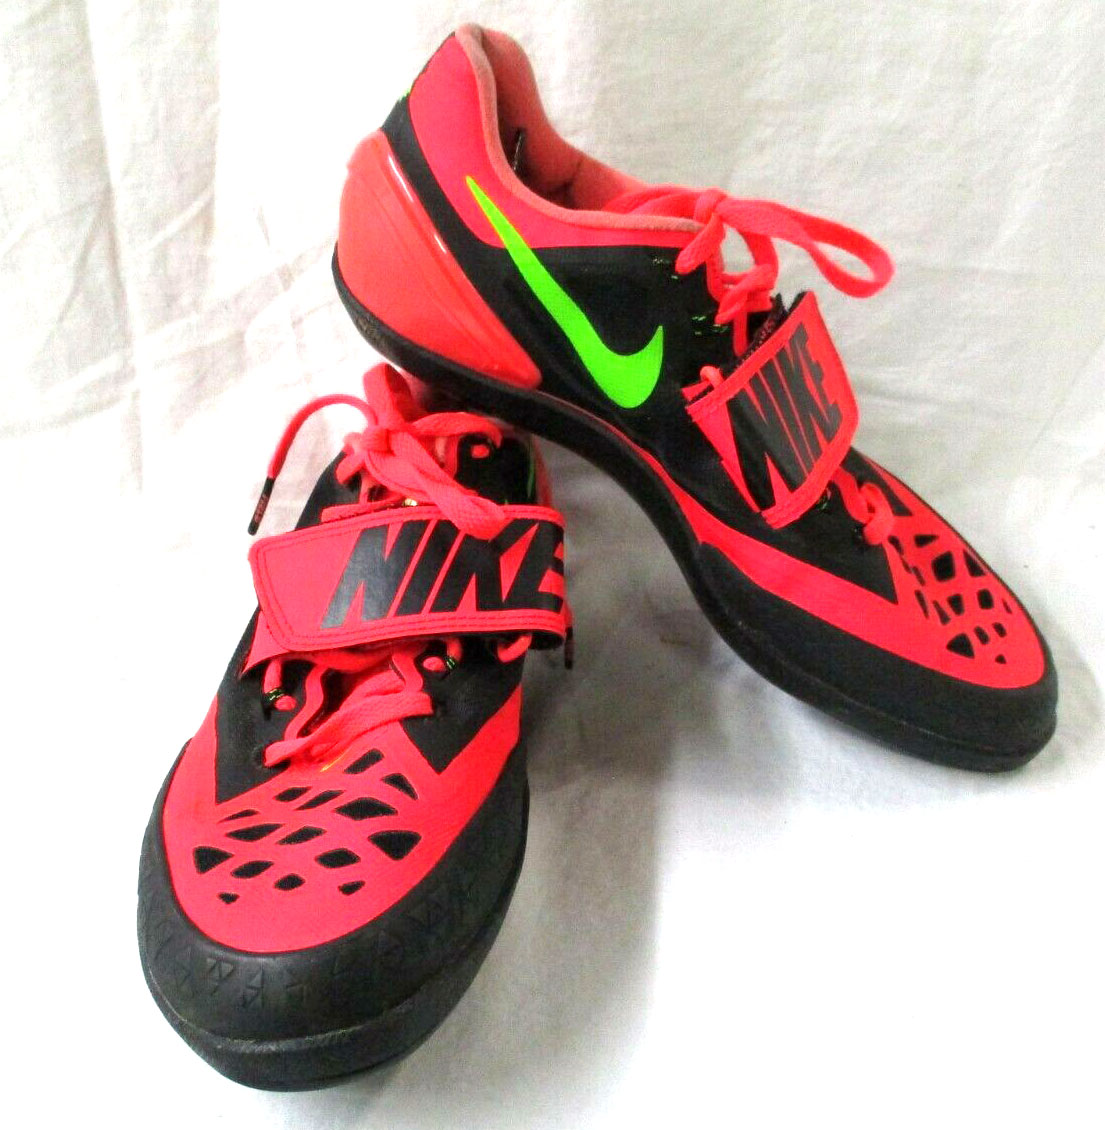 best service 28f5b 27825 Nike Zoom Rotational 6 - 600